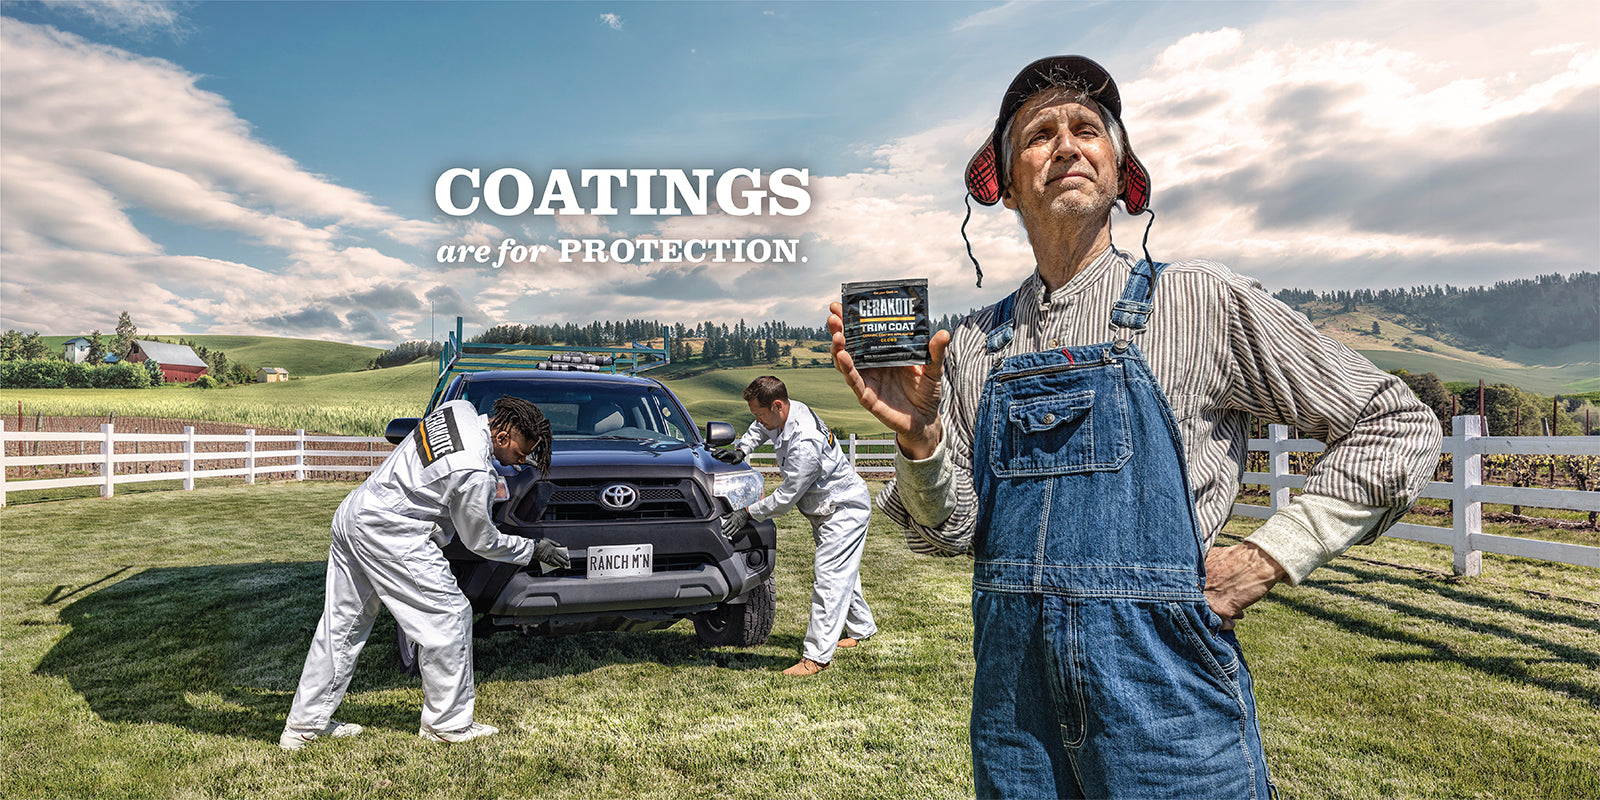 coatings are for protecting